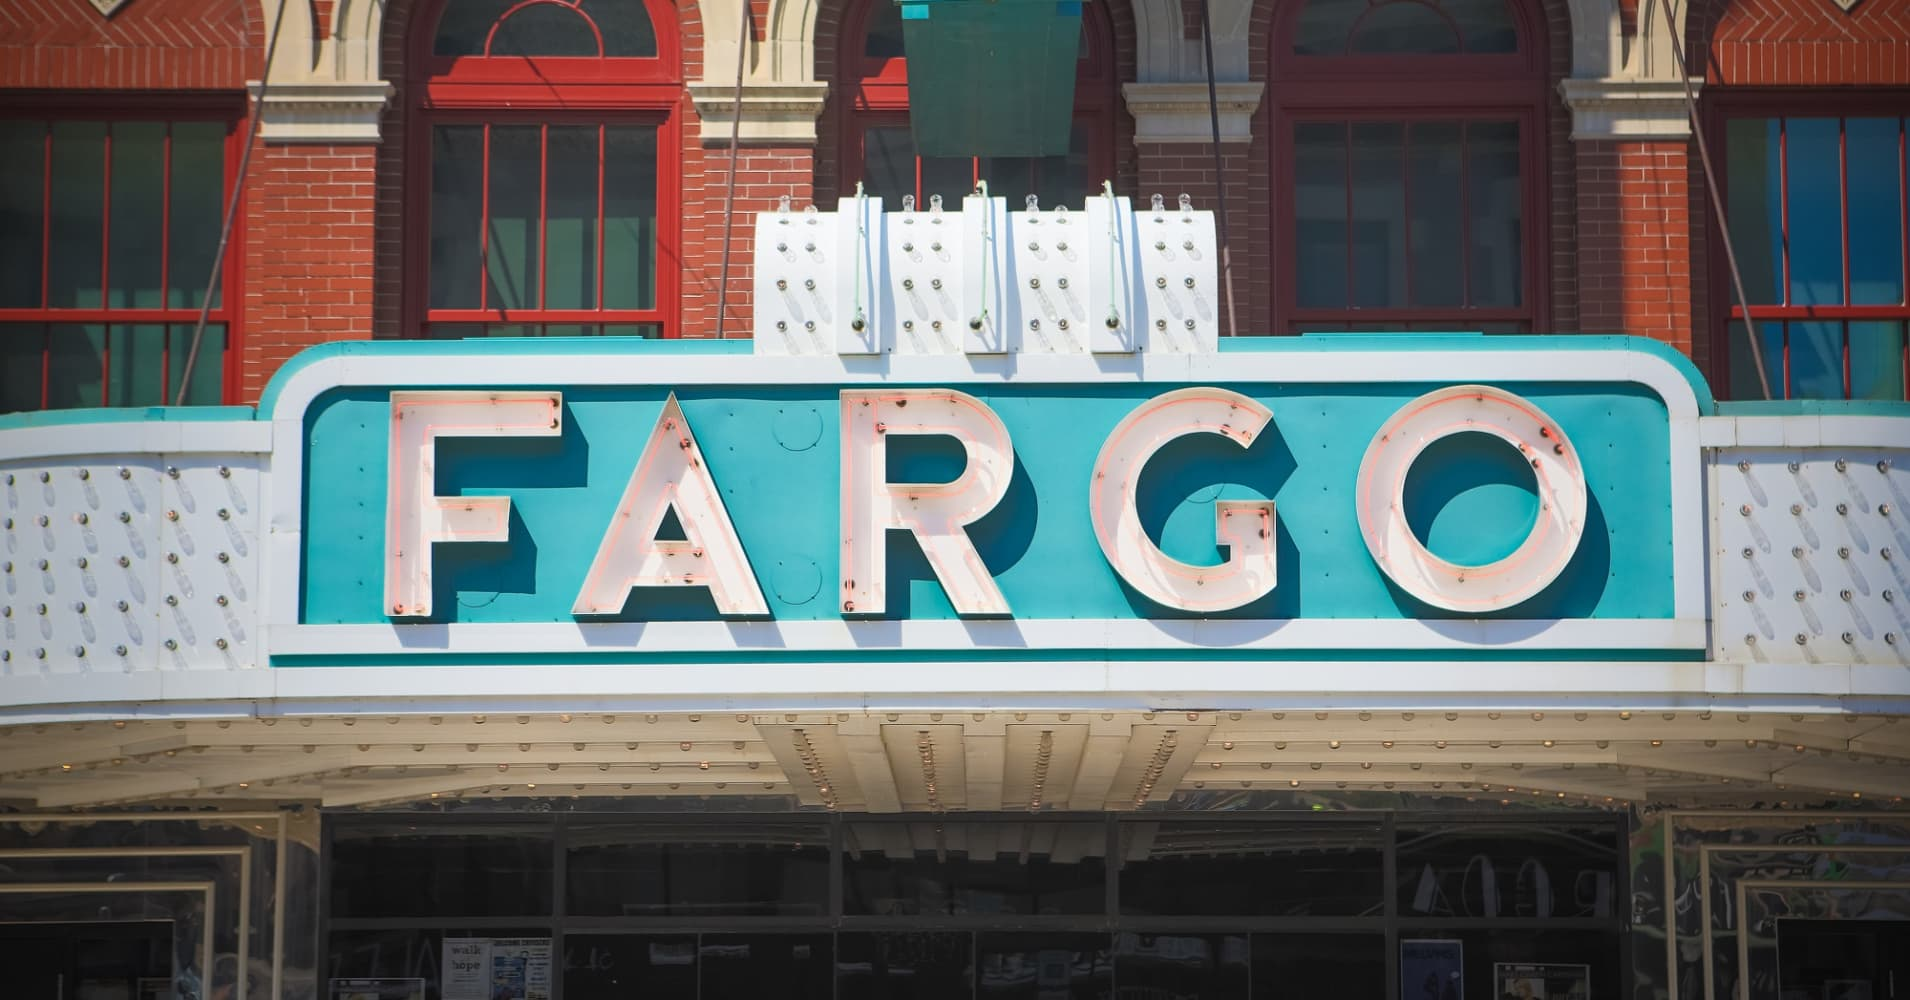 The Fargo Theatre is an art deco movie theatre in downtown Fargo, North Dakota. It was built in 1926. It was restored in 1999 to its historic appearance and now is a center for the arts in the Fargo-Moorhead metropolitan area. The building is listed on the National Register of Historic Places.